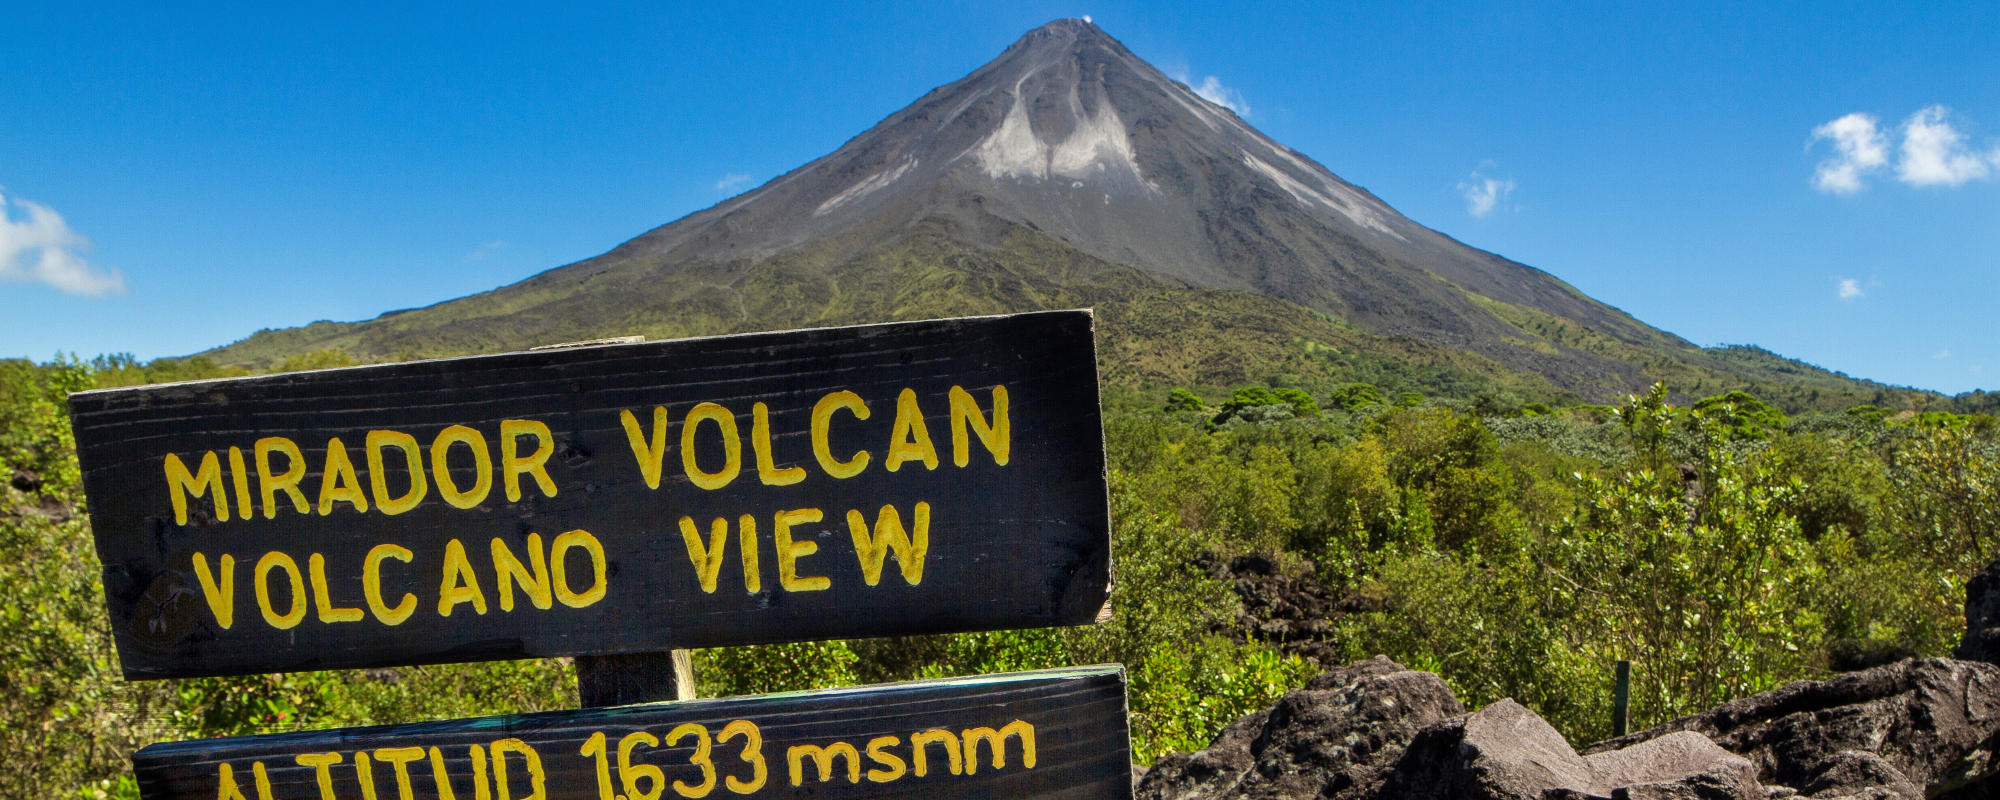 Arenal Volcano Hotels Costa Rica Resorts Arenal Hotel Luxury La Fortuna Lodging Spas Hot Springs Cabins Chalets Nature Lodges Volcano Views